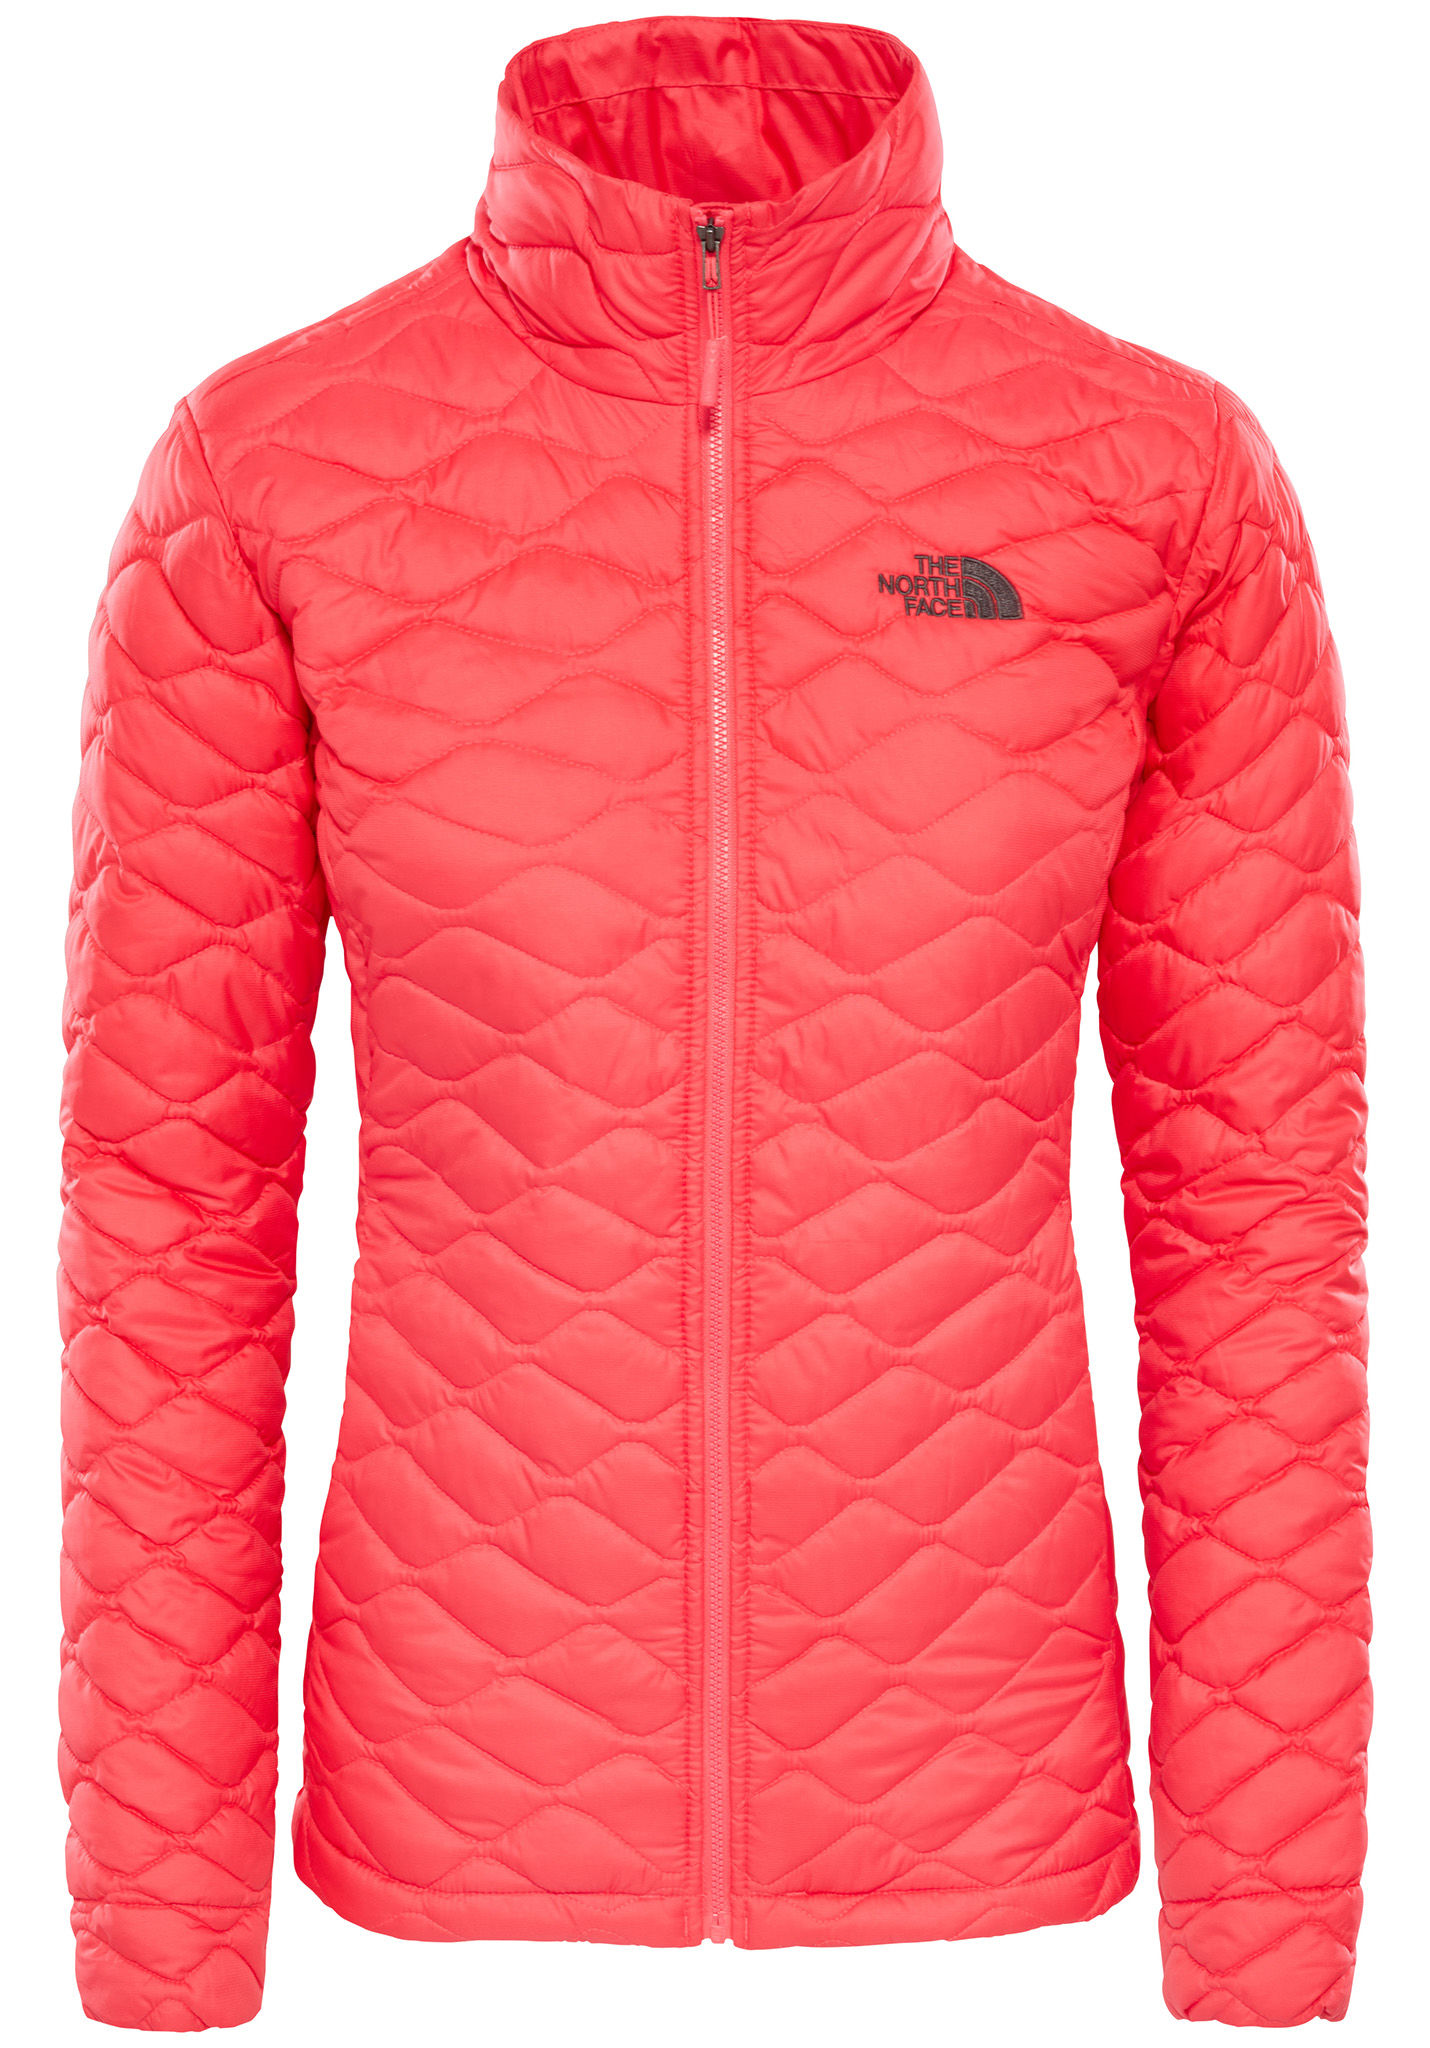 ea0d18df4 THE NORTH FACE Thermoball - Outdoor Jacket for Women - Pink